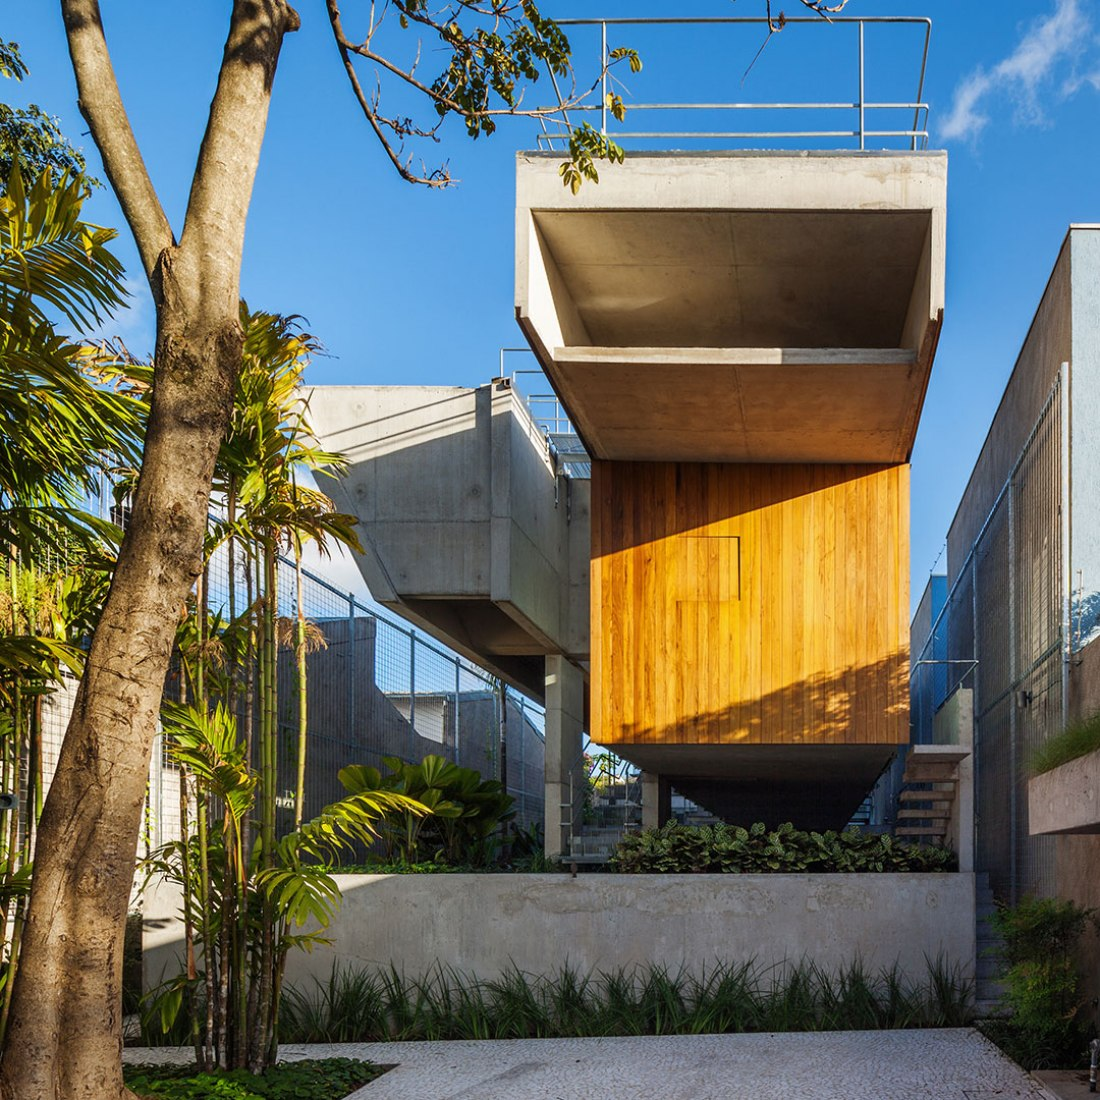 Weekend House by Angelo Bucci. Photograph © Nelson Kon. Image courtesy of MCHAP.